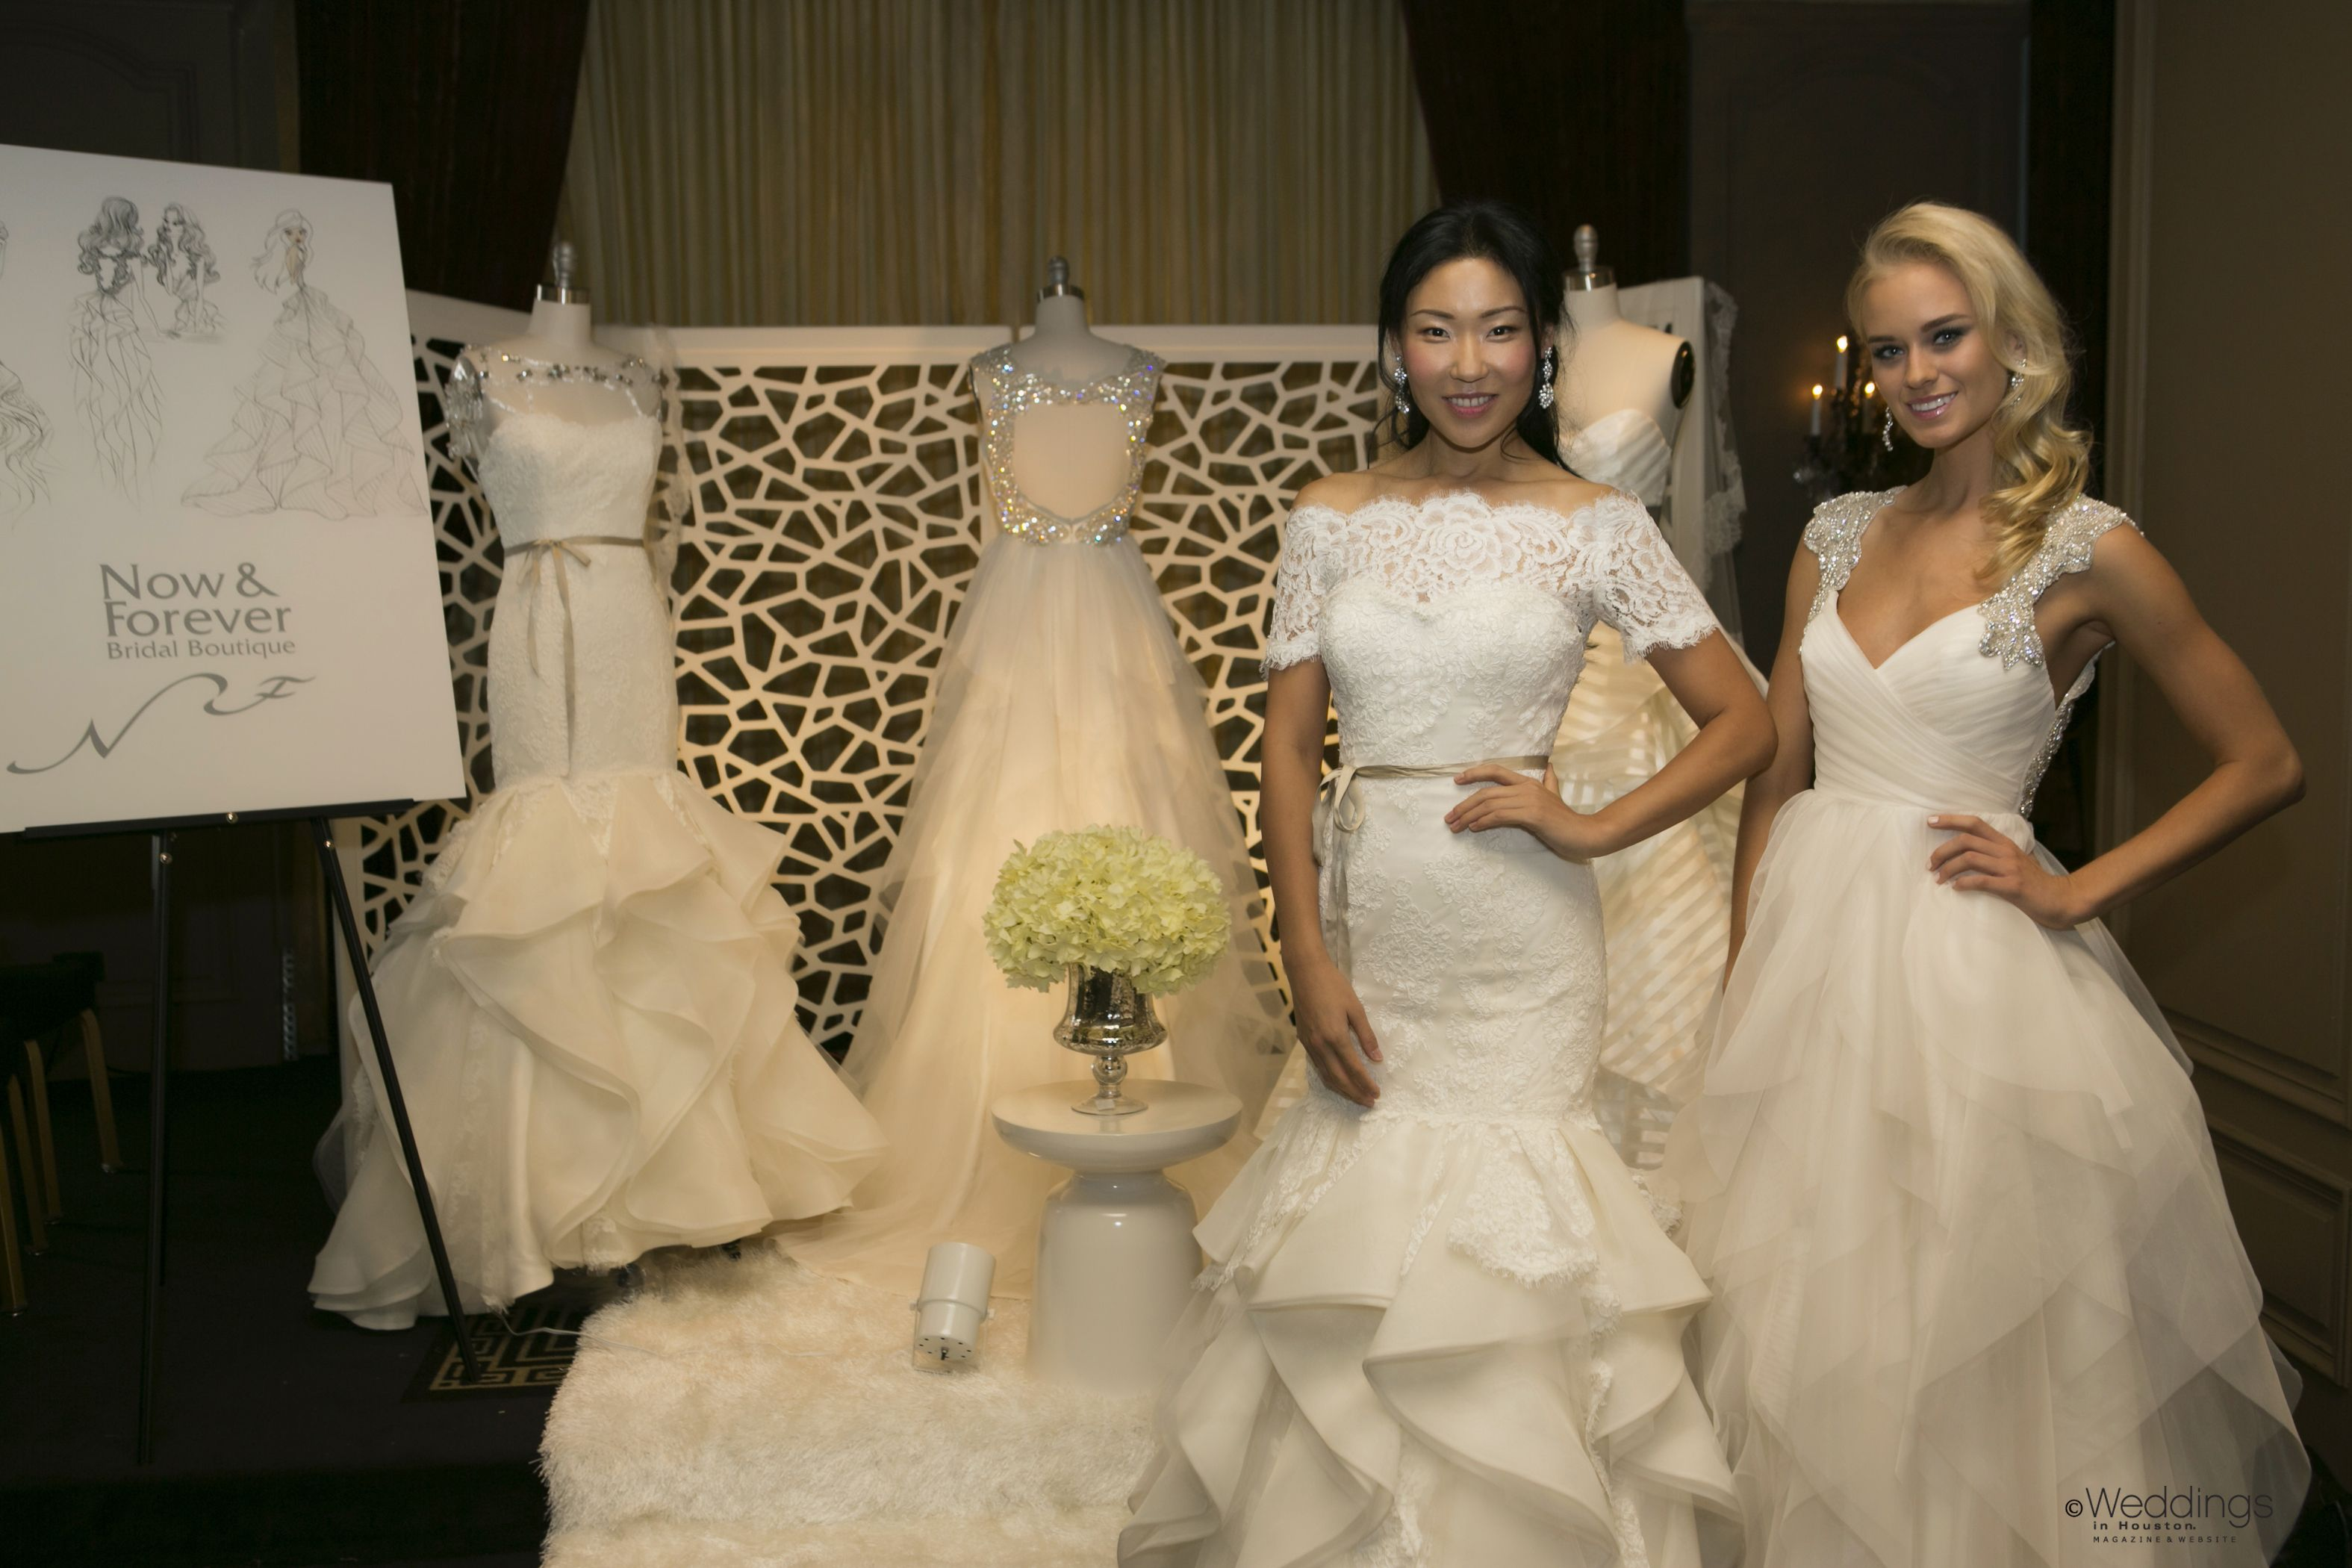 Elite wedding dresses  Lace and chiffon bridal gowns from Now u Forever Boutique  Photo D